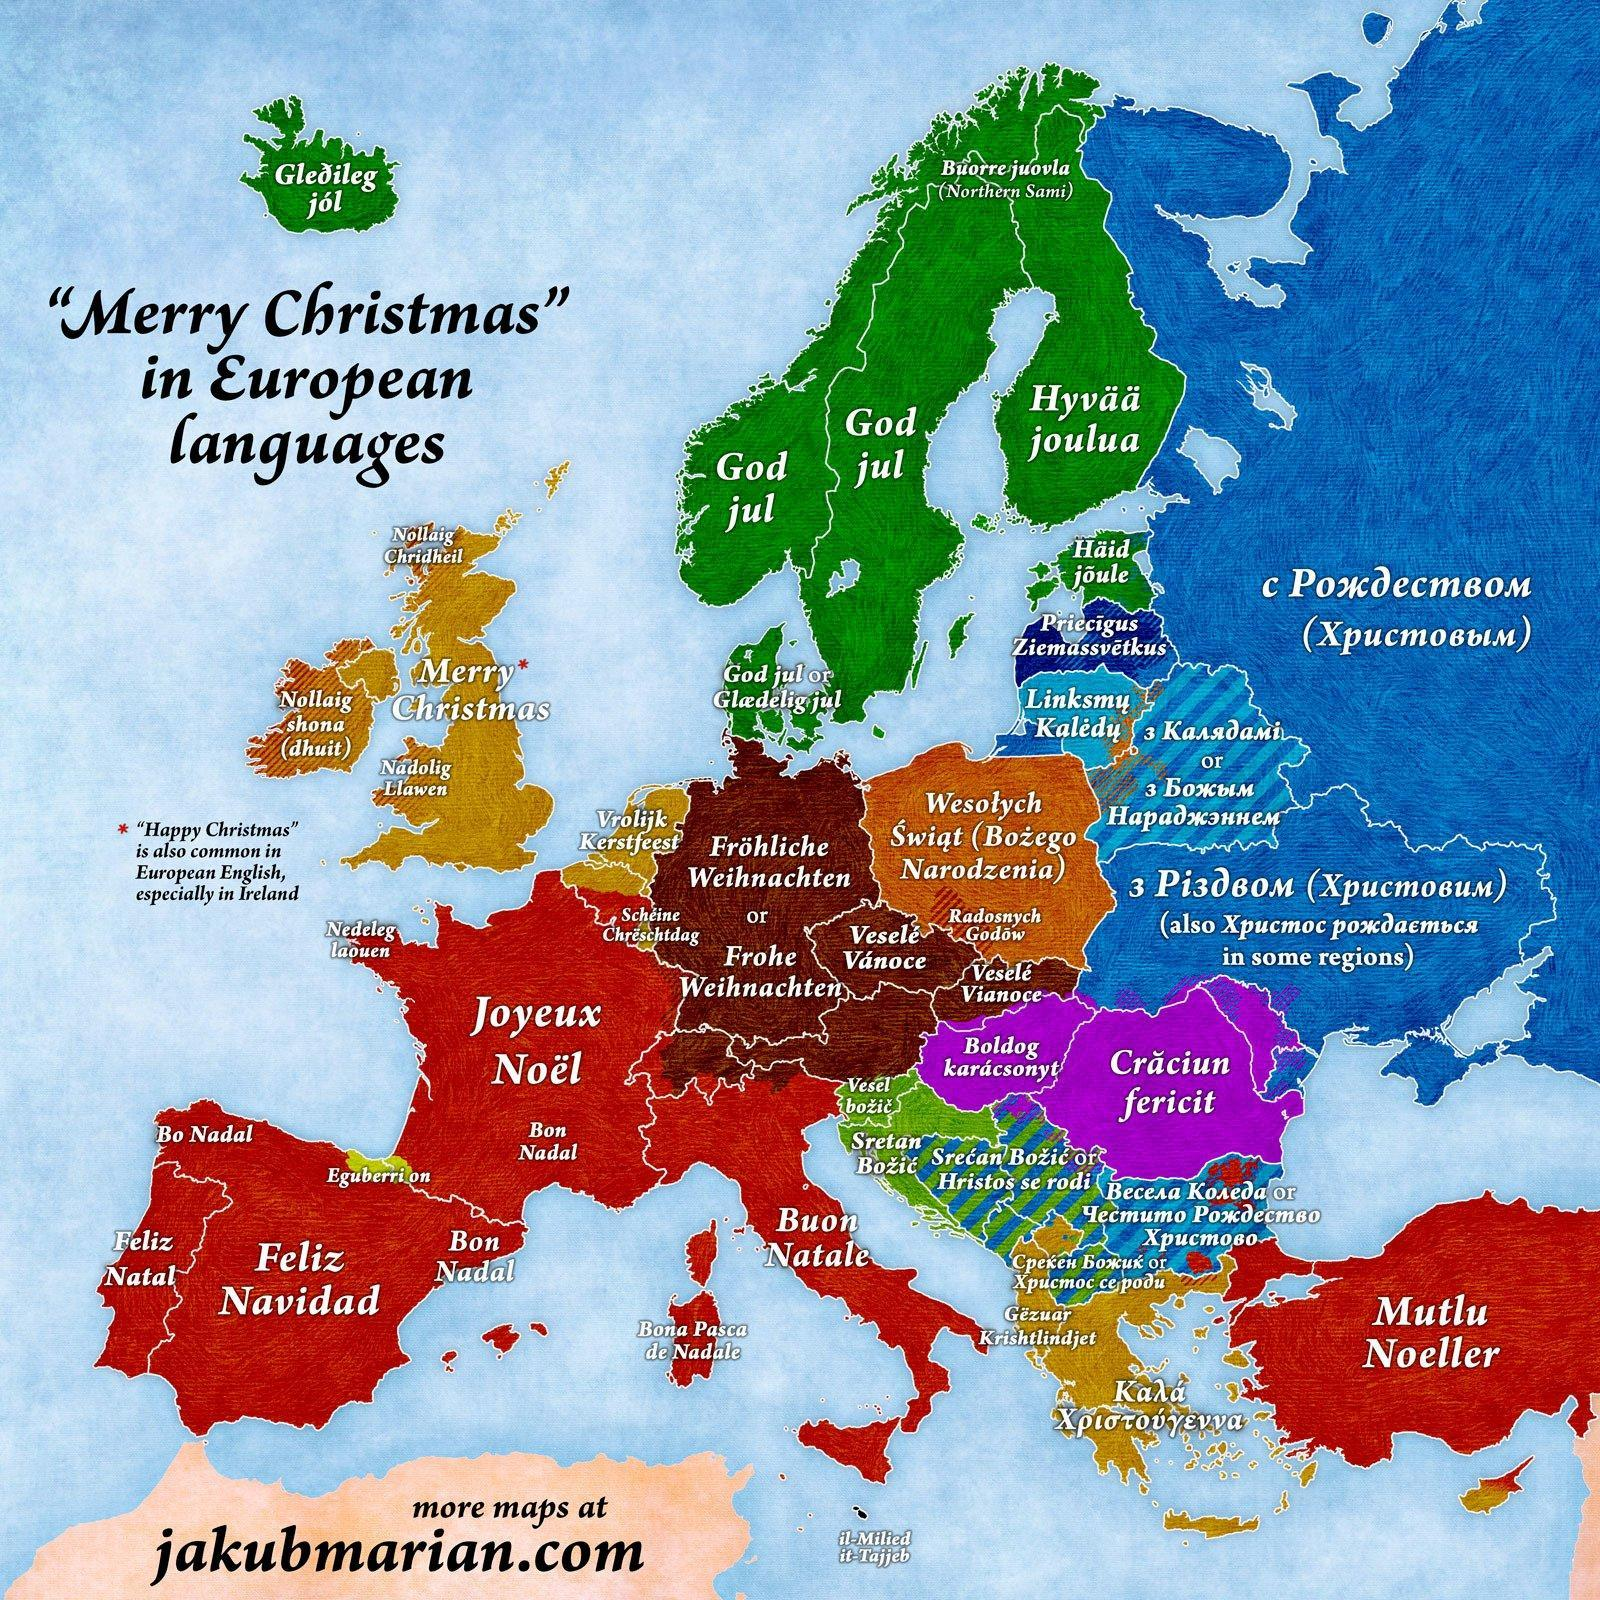 How Do You Say Merry Christmas In Portuguese.How To Say Merry Christmas In Different Countries Across Europe